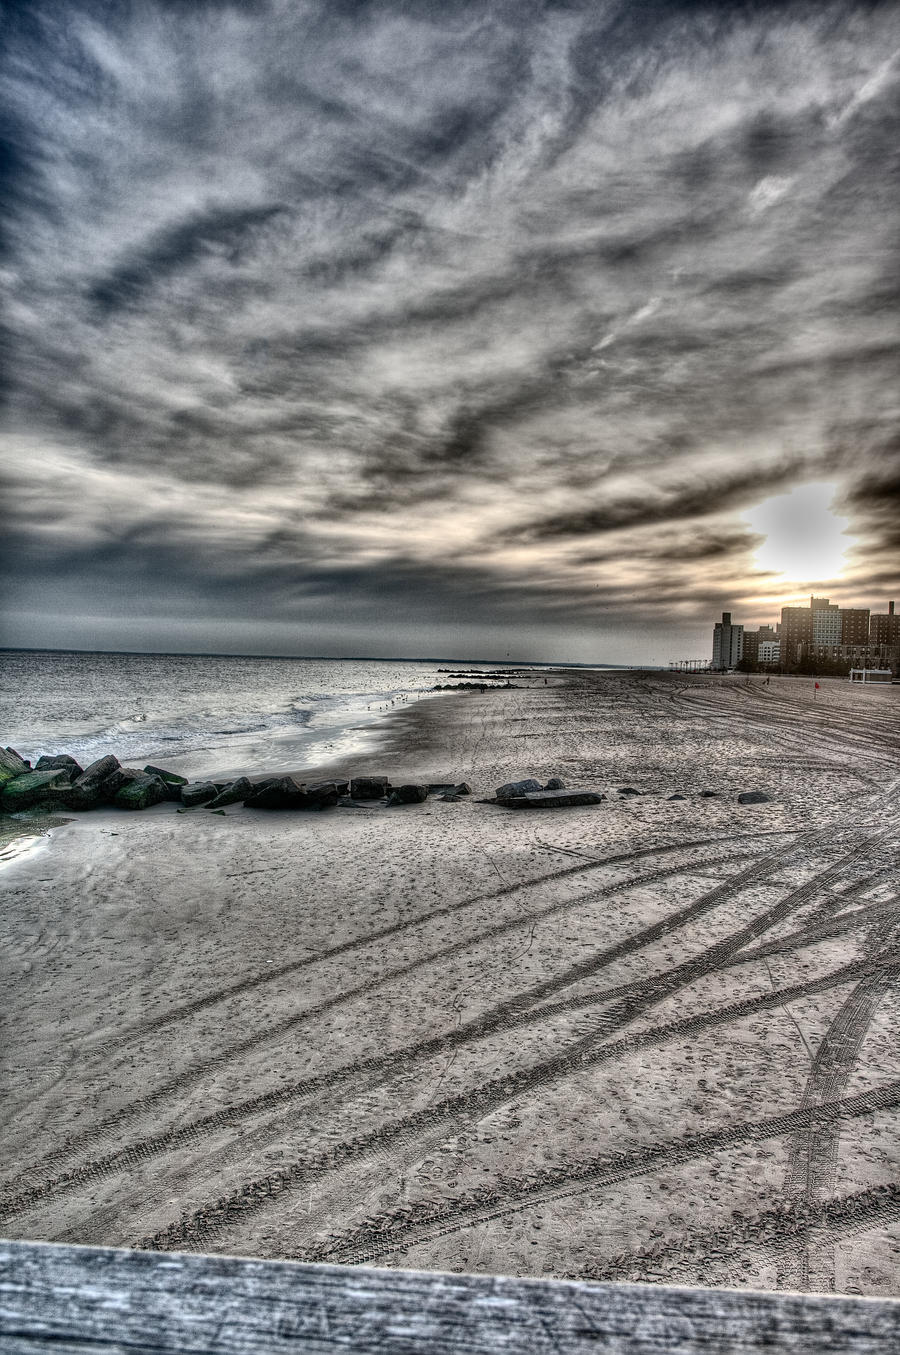 Lines in the Sand by galactica1actual